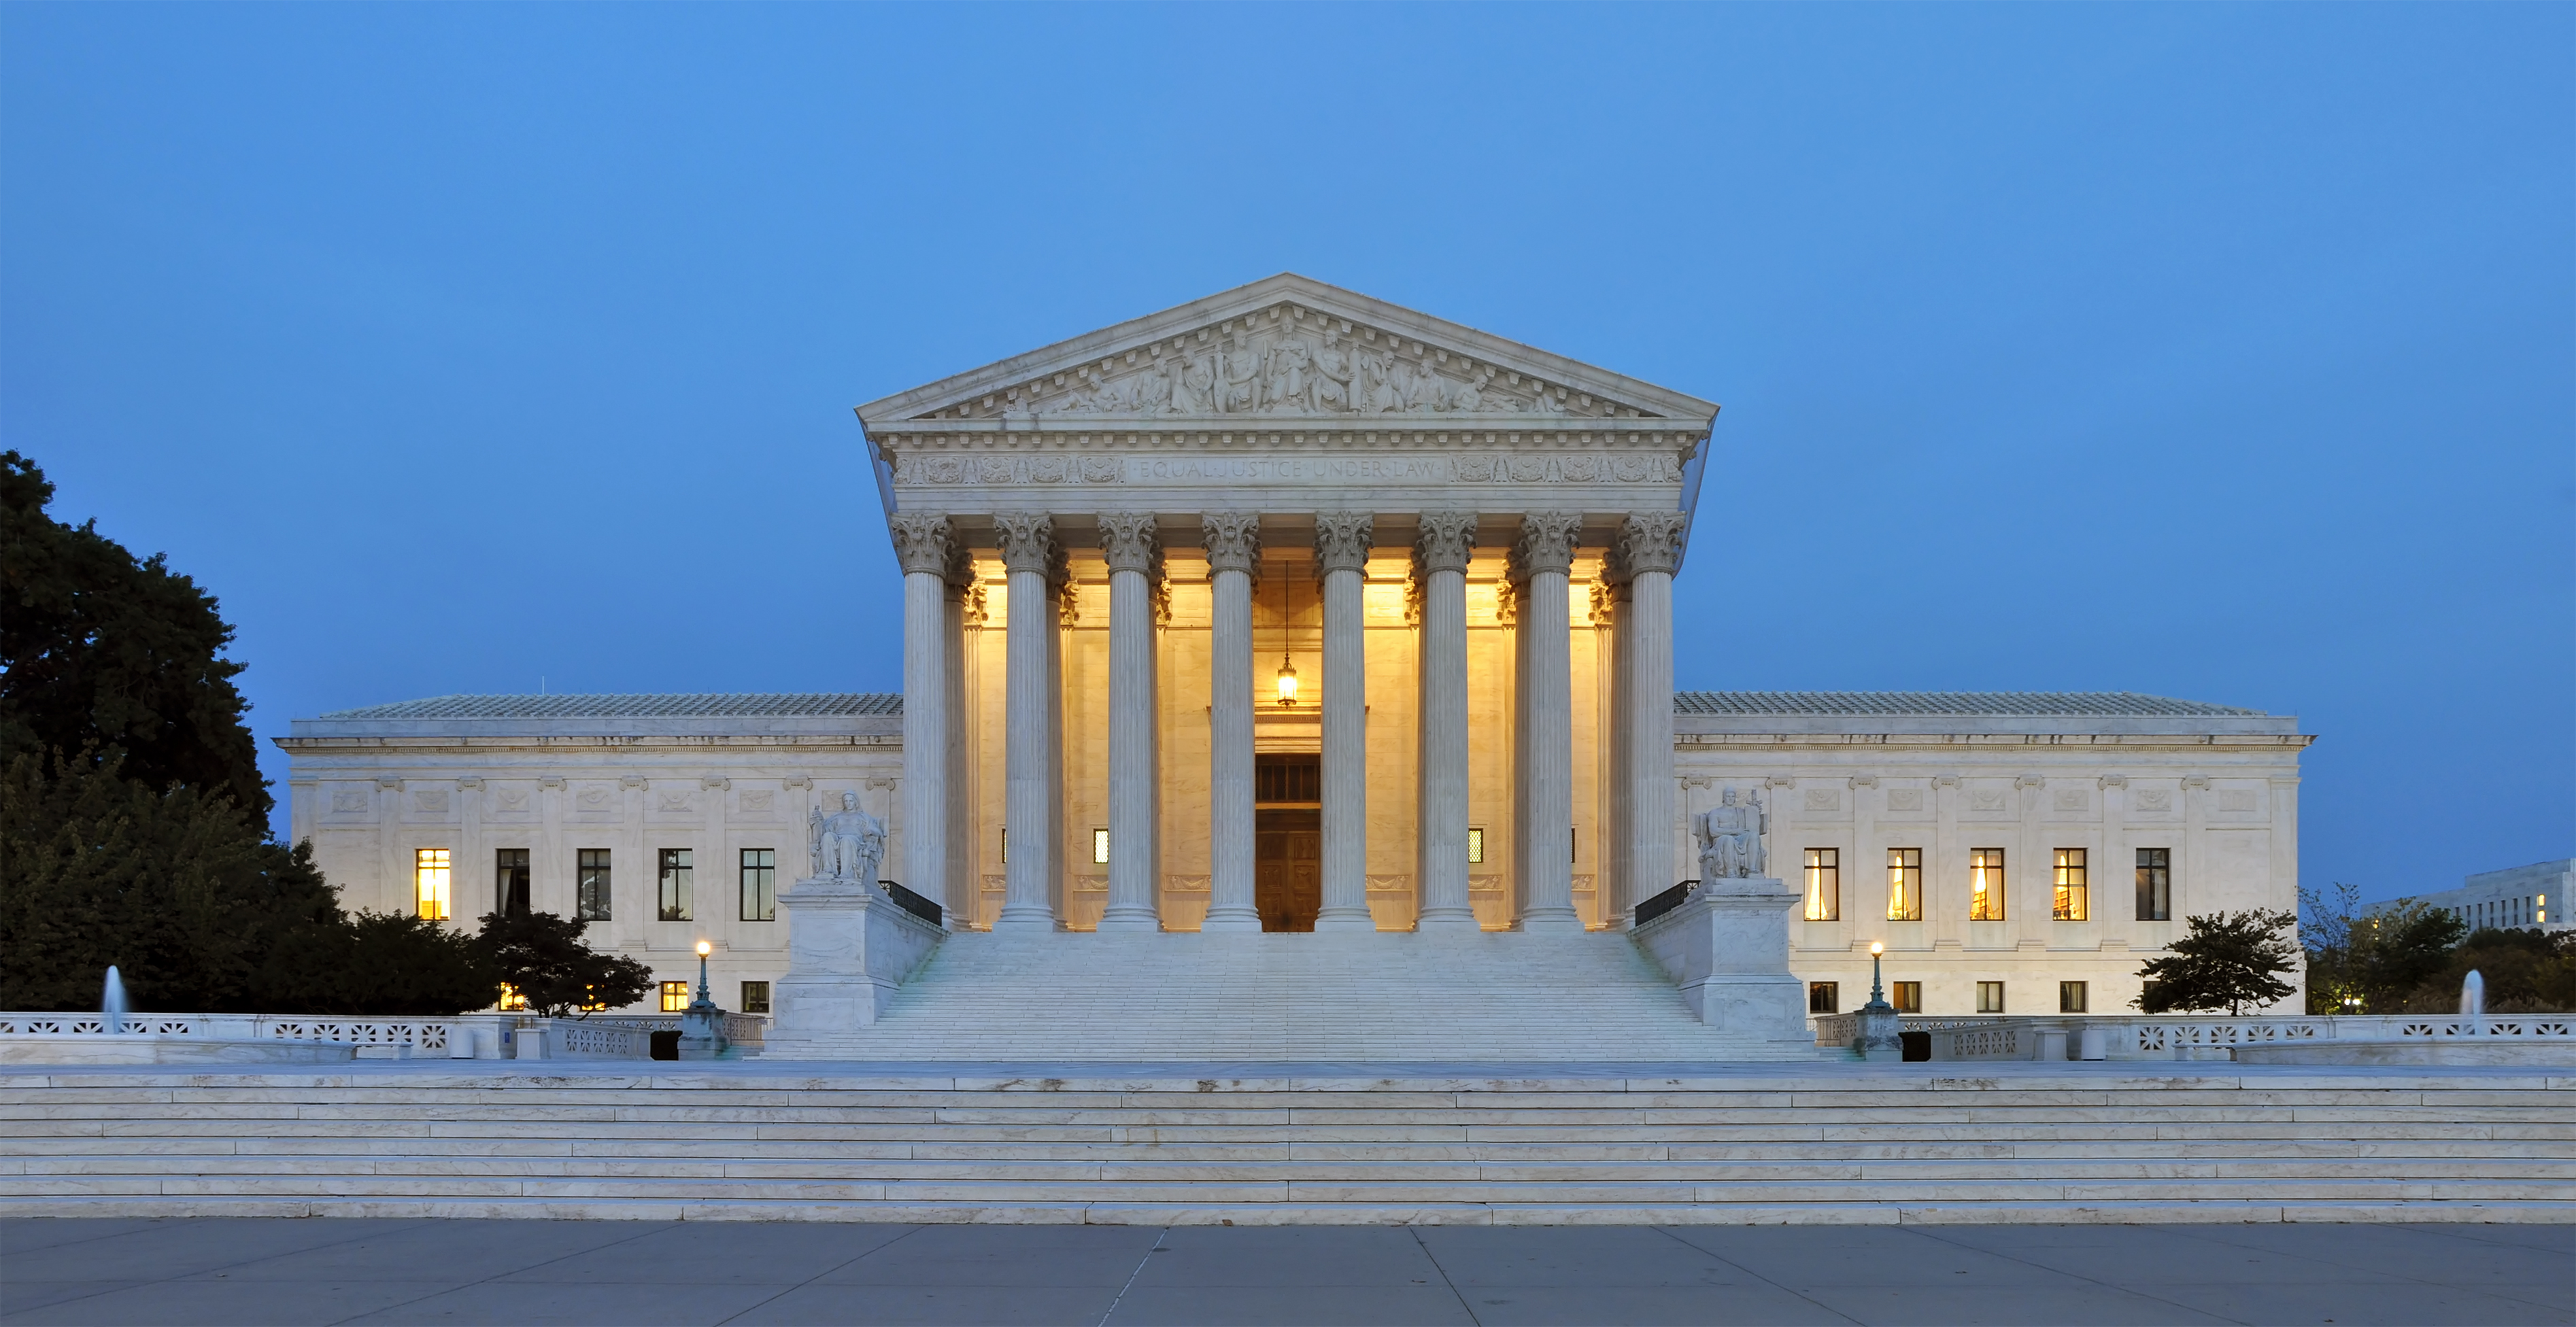 The Implications of a Conservative Supreme Court